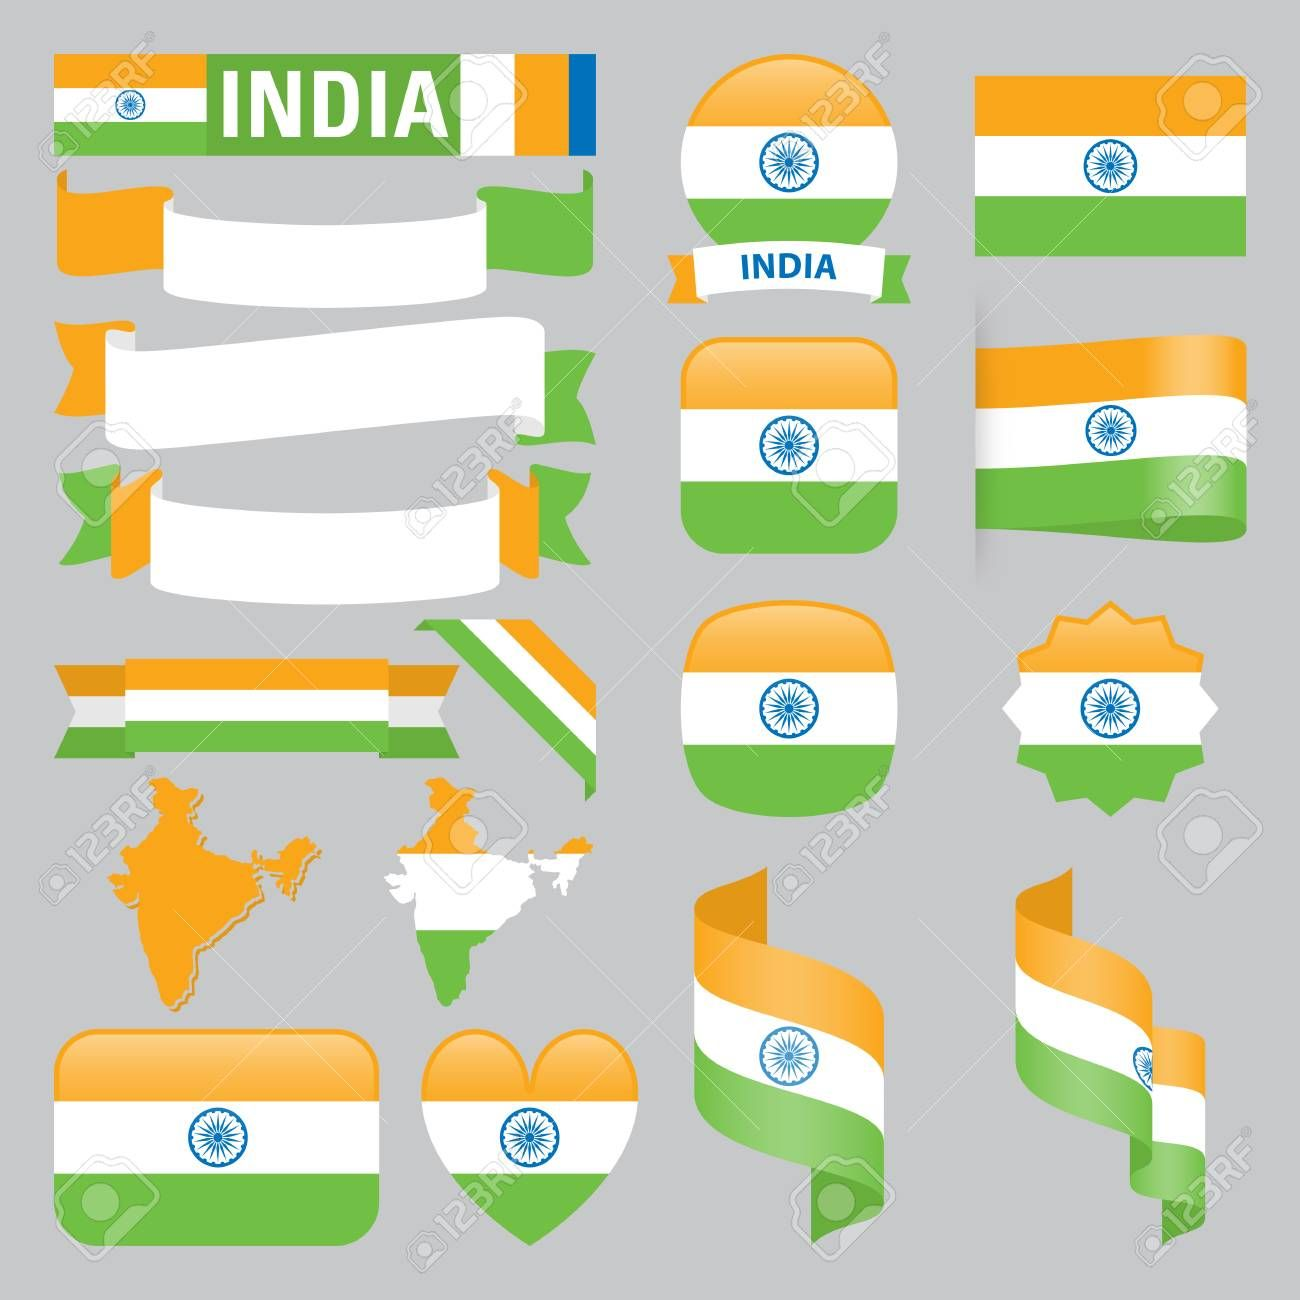 Set Of India Maps Flags Ribbons Icons And Buttons With Different Shapes Ad Maps Flags Set India Buttons In 2020 India Map Flag Different Shapes